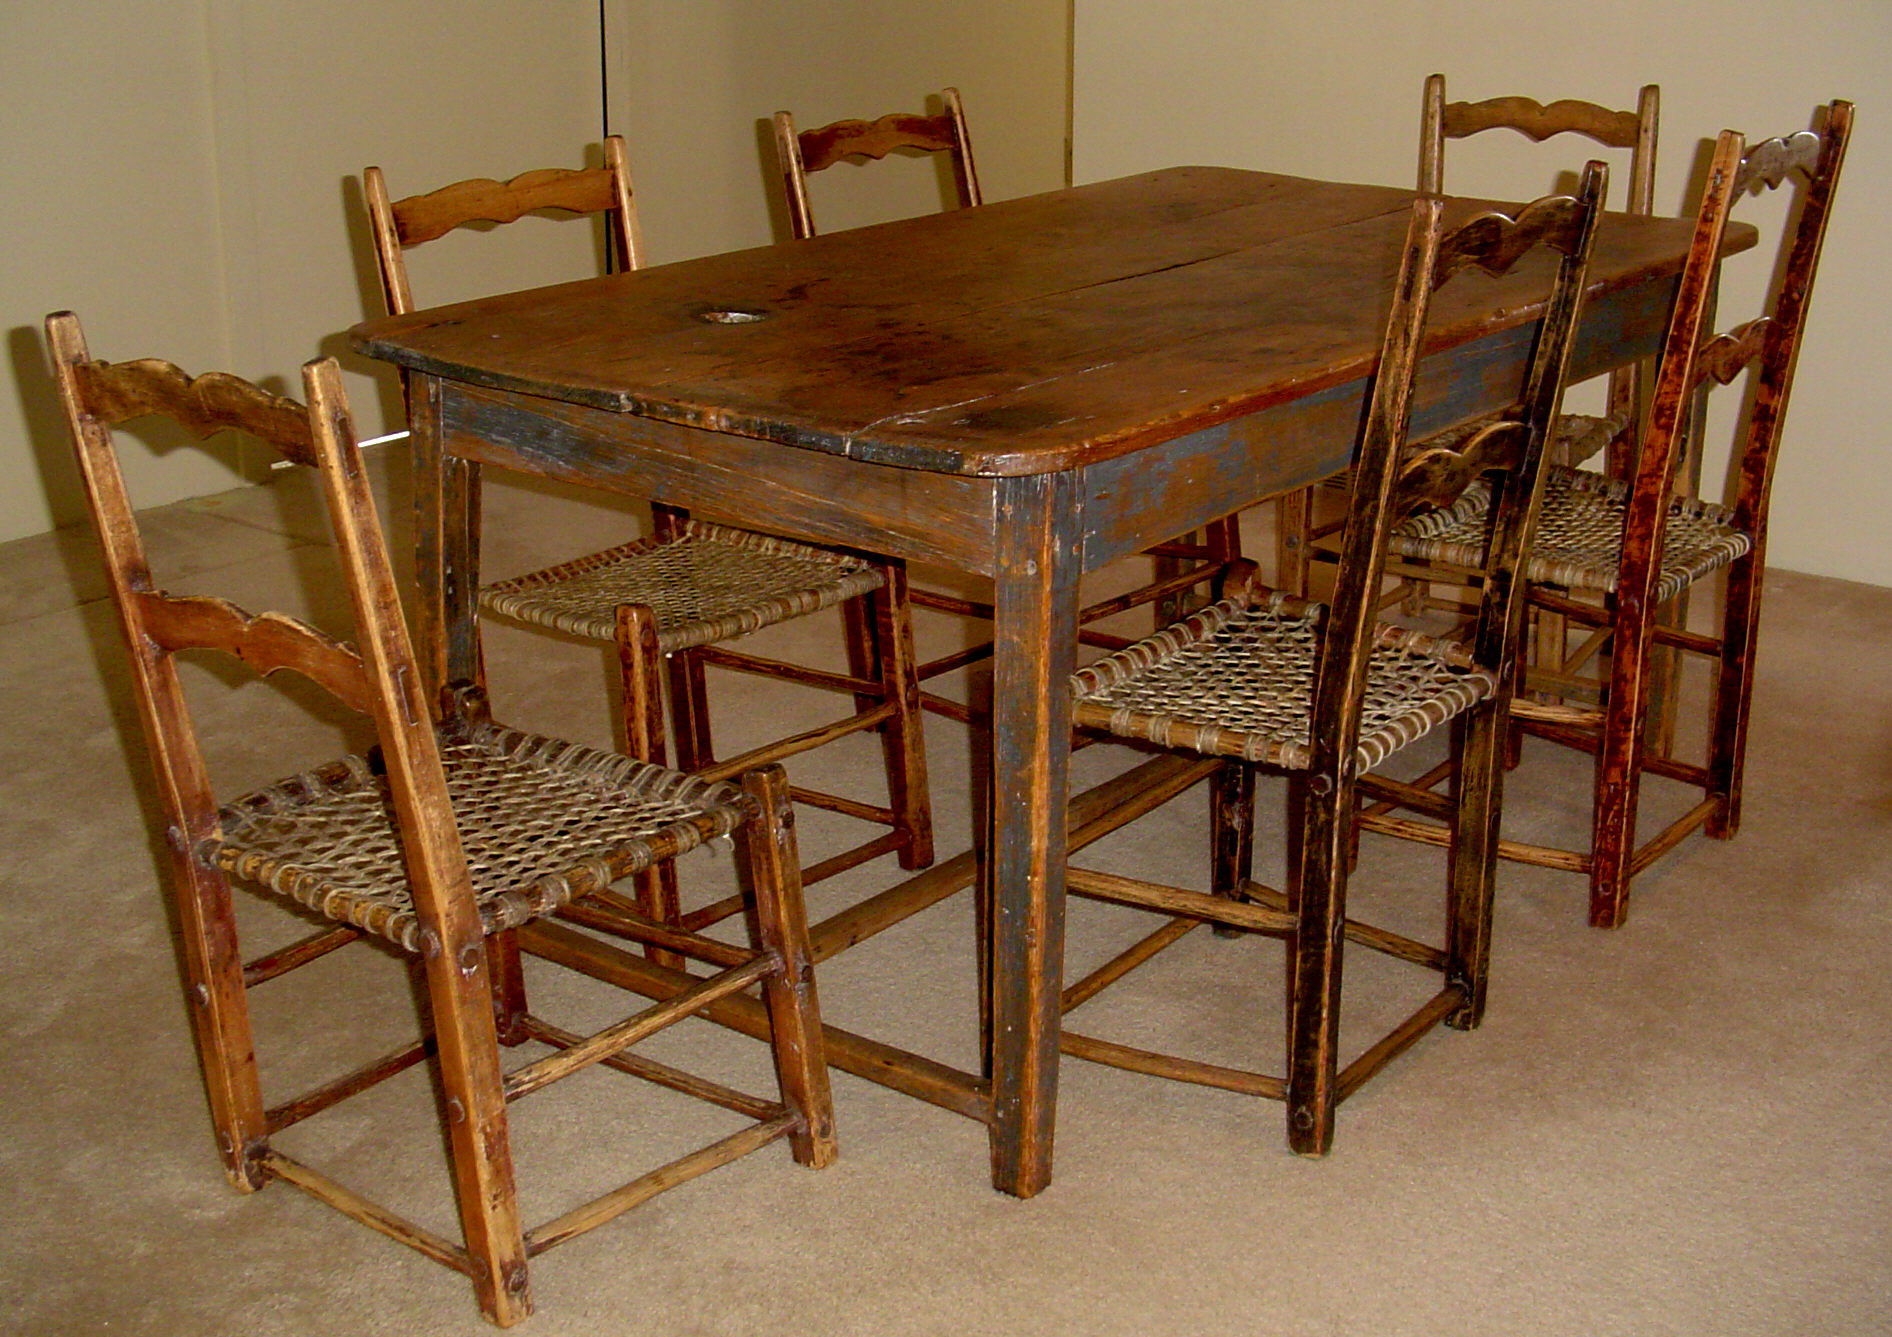 Primitive Kitchen Set Canadian Pine Wood Furniture For Sale Classifieds